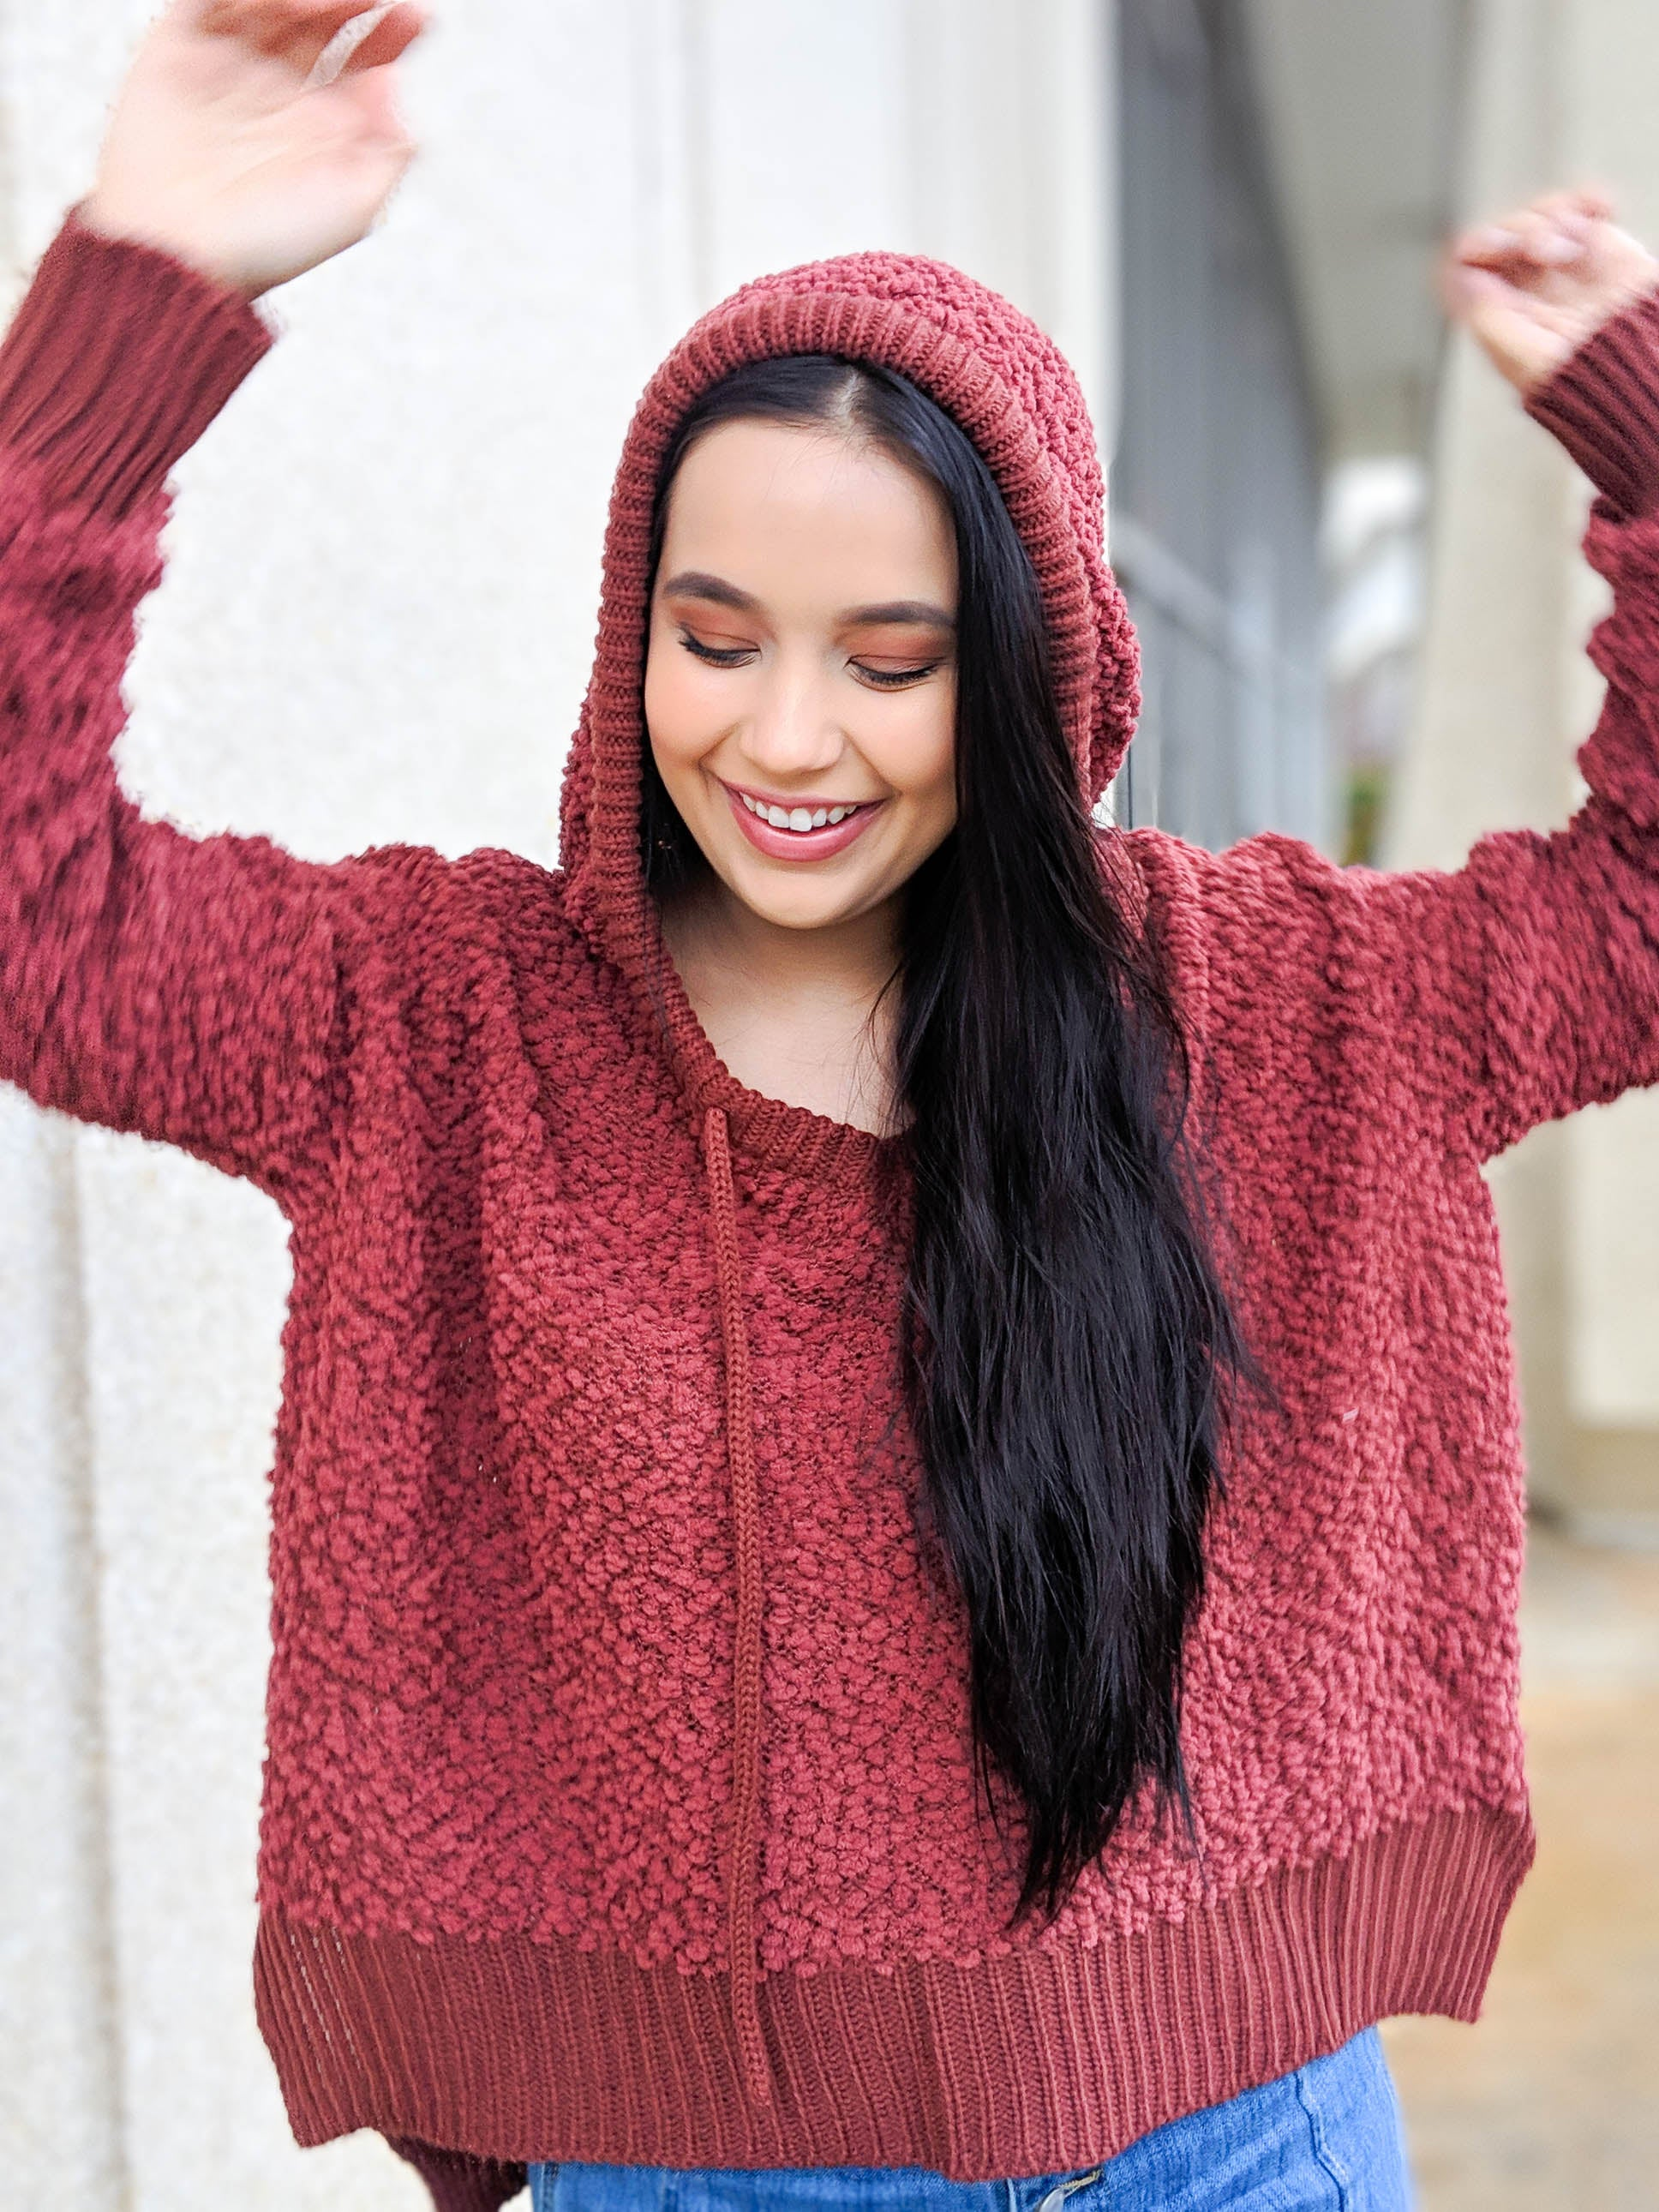 Fired Up For The New Year Popcorn Knit Hoodie - The Flawless Babe Boutique